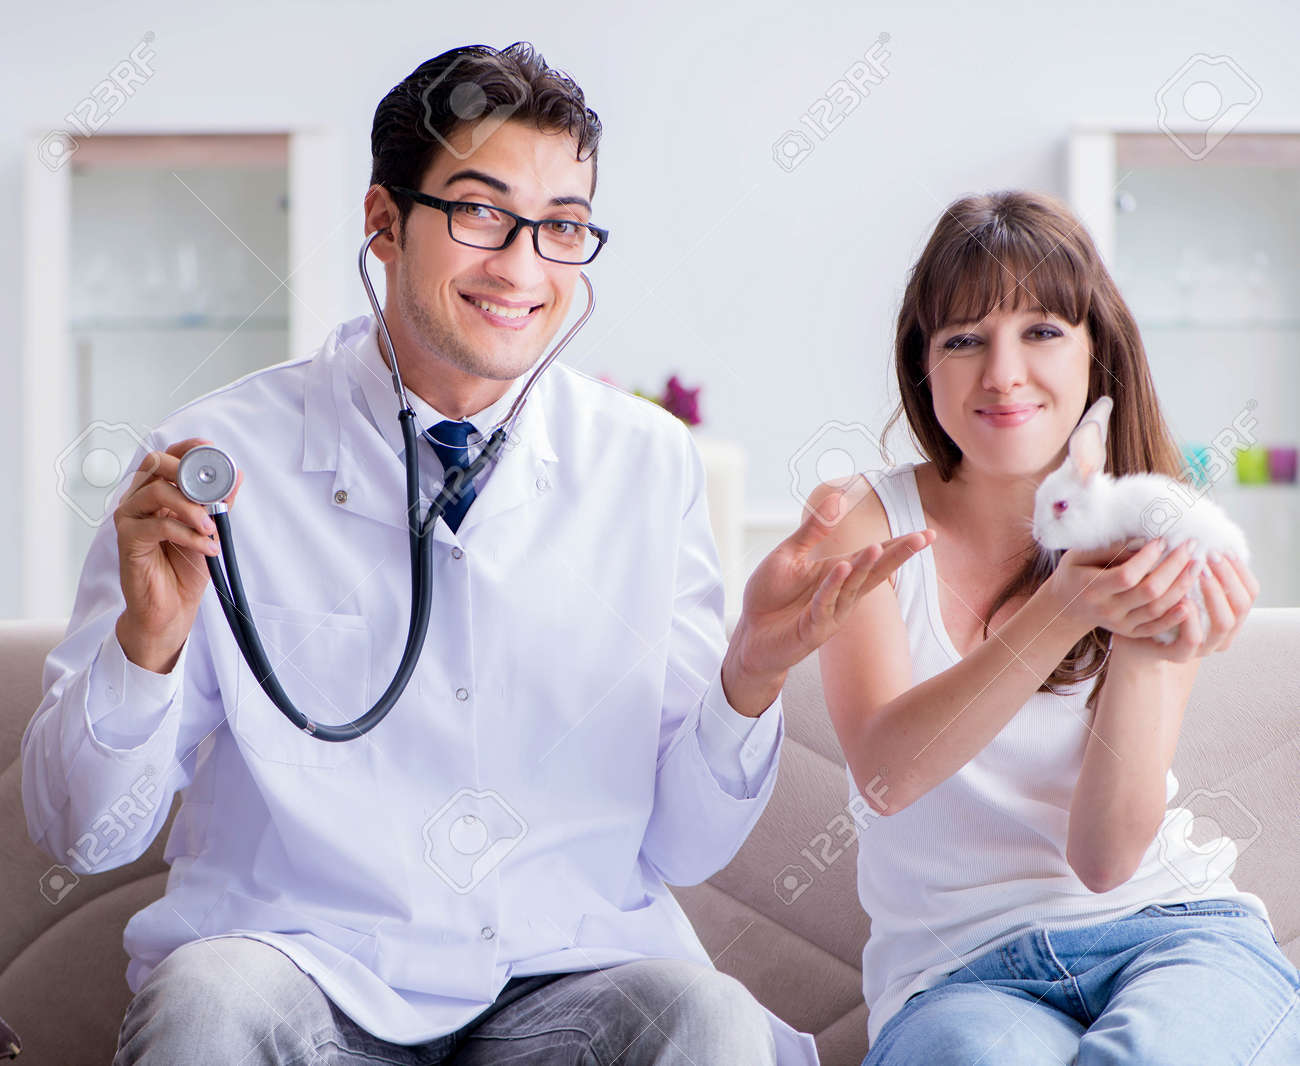 Woman with pet rabbit visiting vet doctor - 157413653